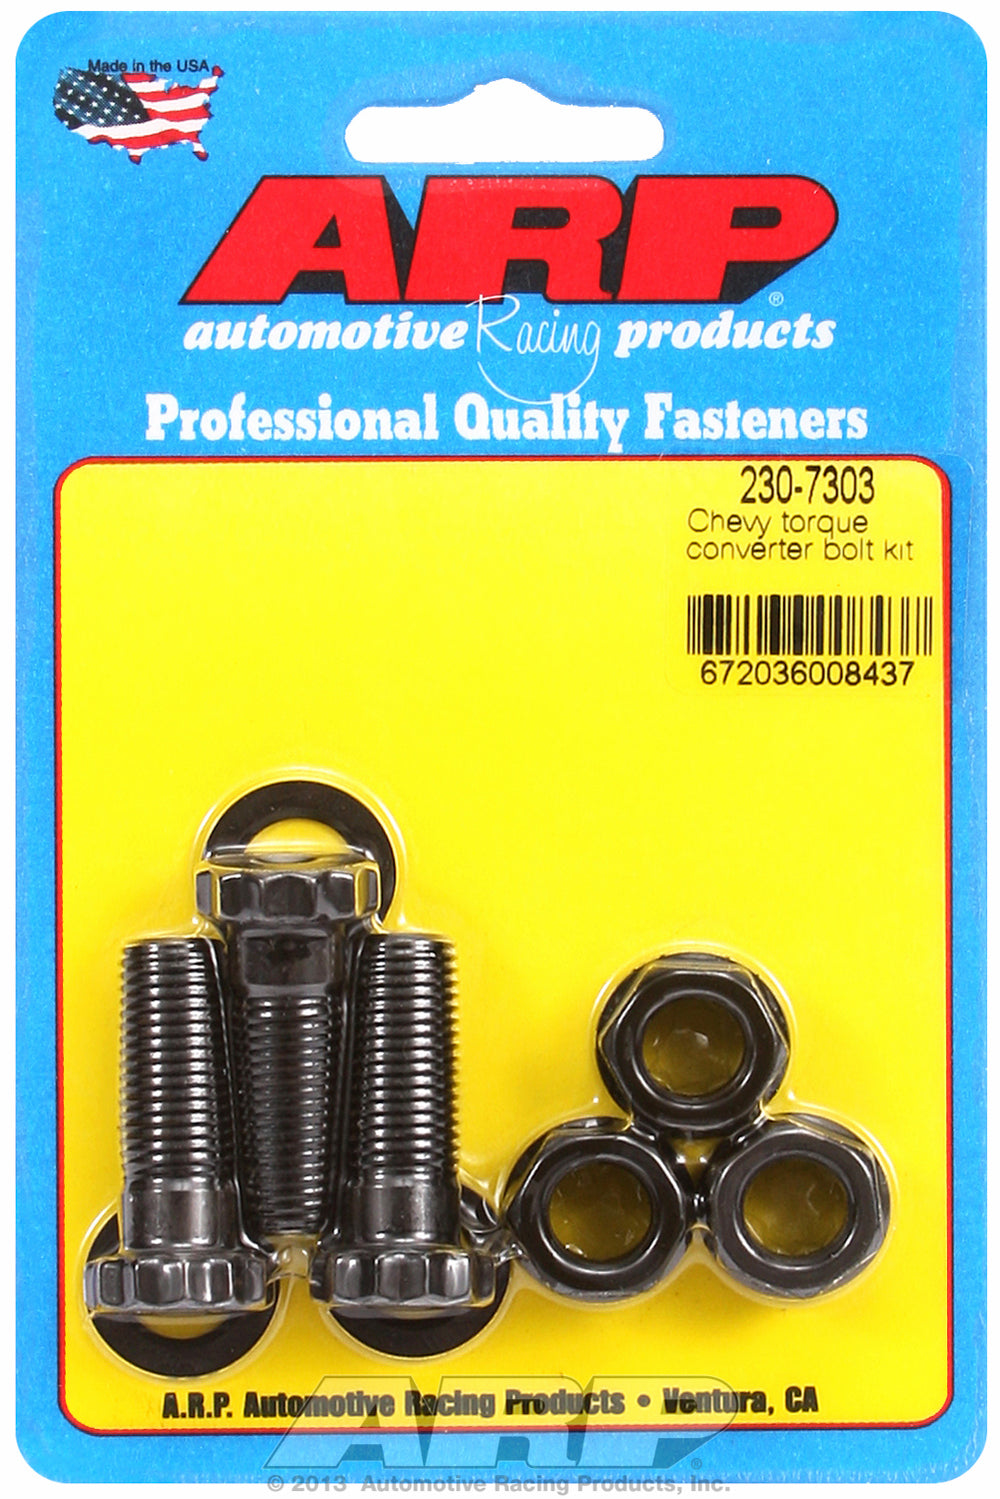 Pro Series Torque Converter Bolts for GM Powerglide, TH350 & TH400 w/ race converter - 1/2˝ thick ta